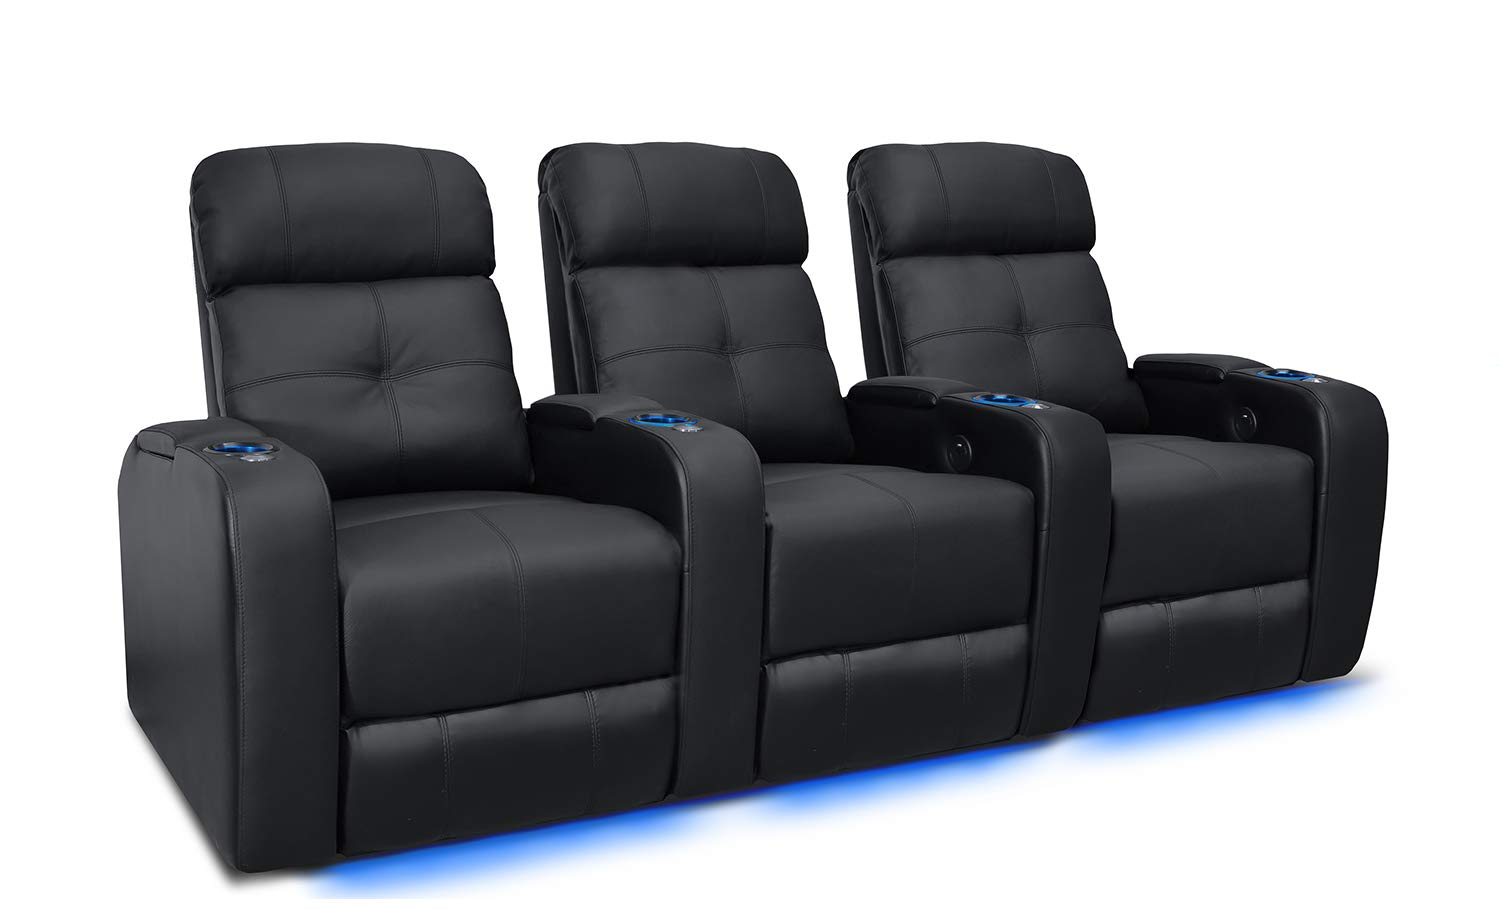 Valencia Verona Premium Top Grain 9000 Leather Power Recliner LED Lighting Home Theater Seating (Row of 3, Black) by Valencia Seating